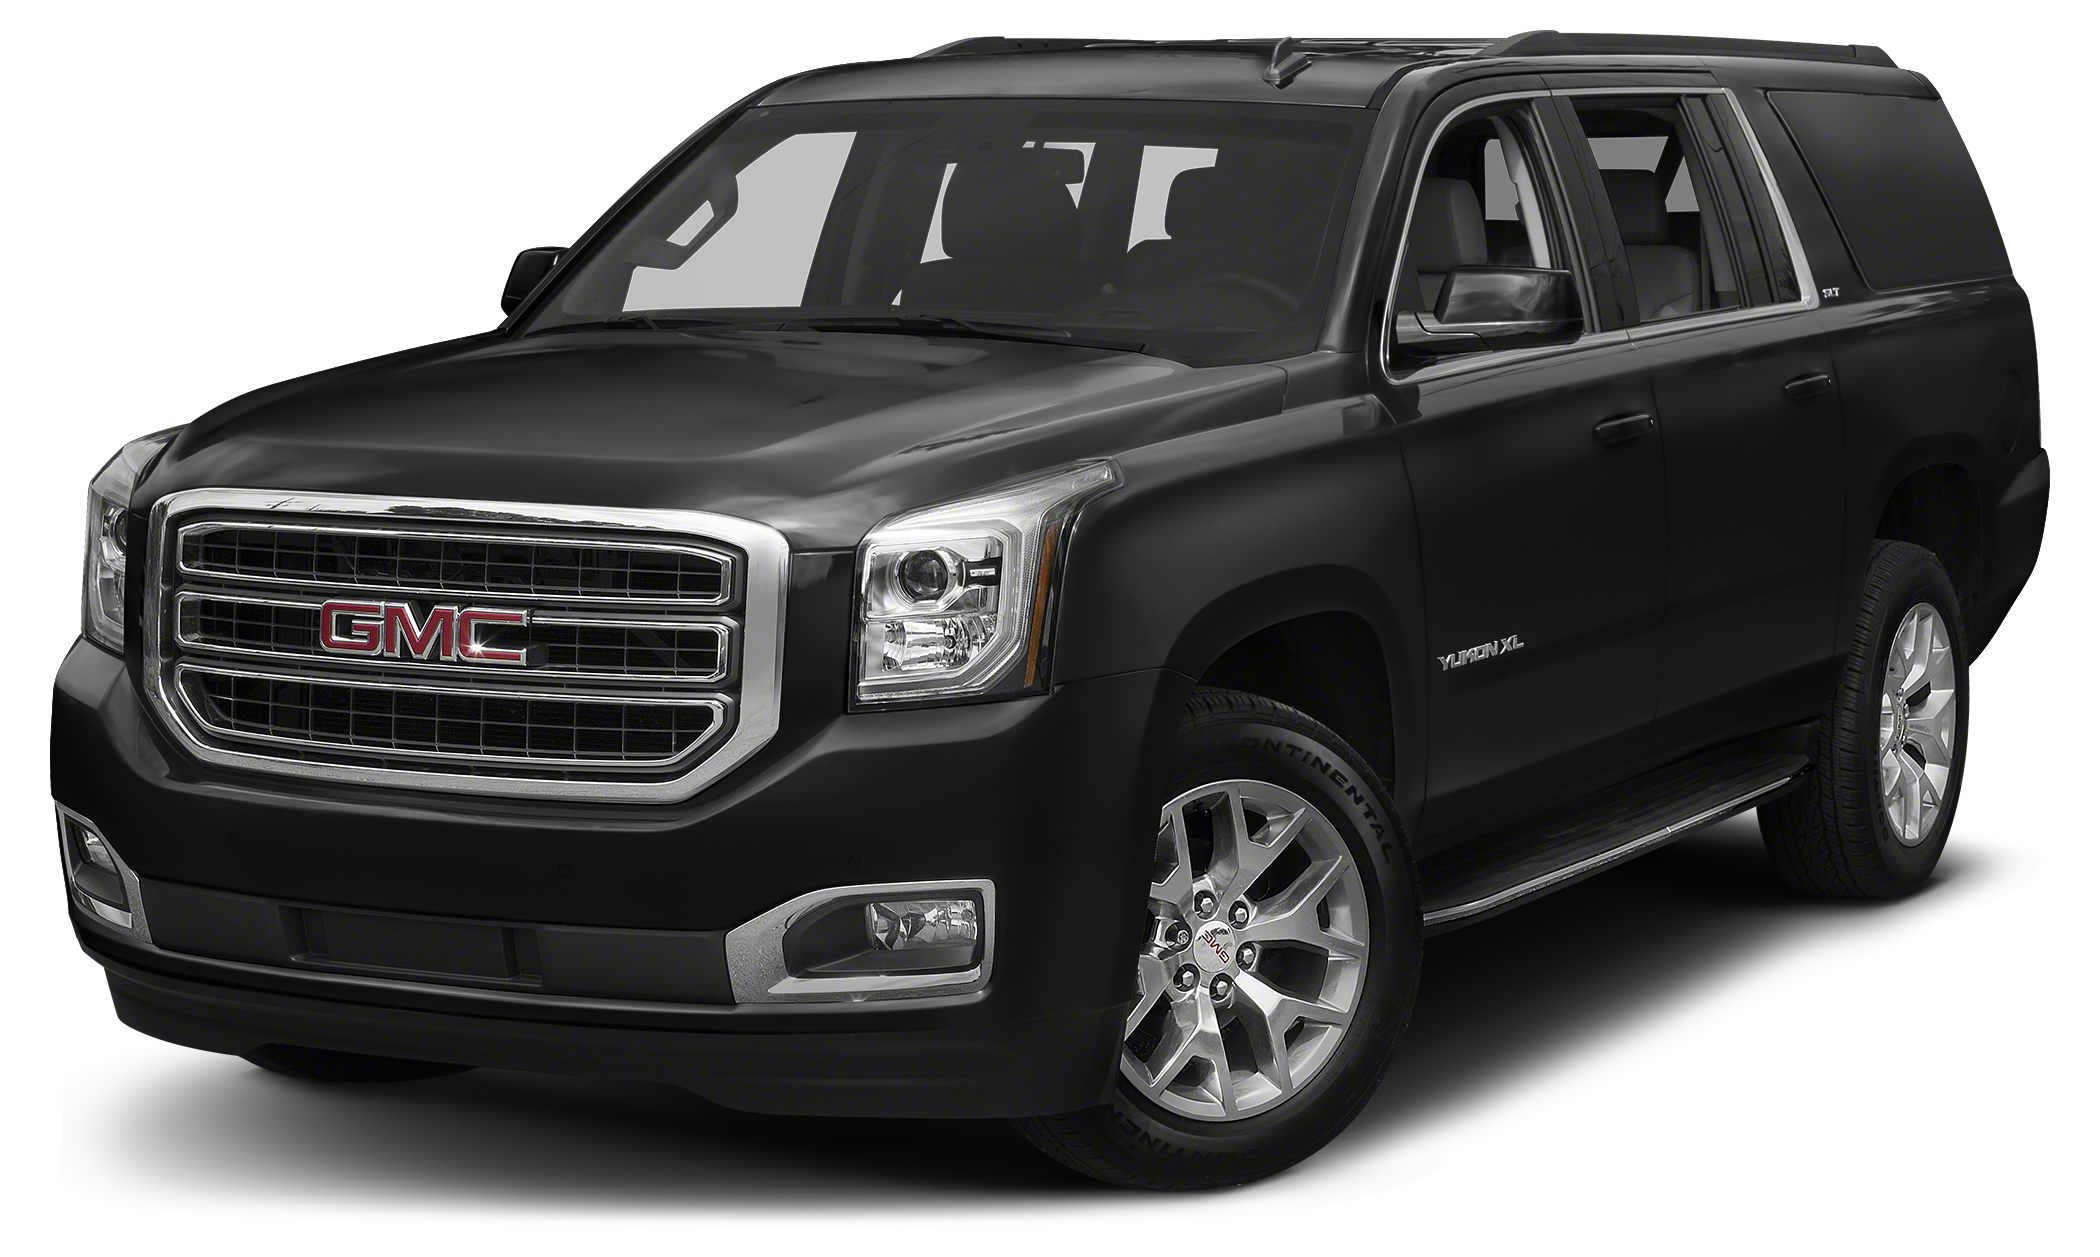 2016 GMC Yukon XL SLT This smooth-riding 2016 GMC Yukon XL SLT 1500 provides extraordinary options